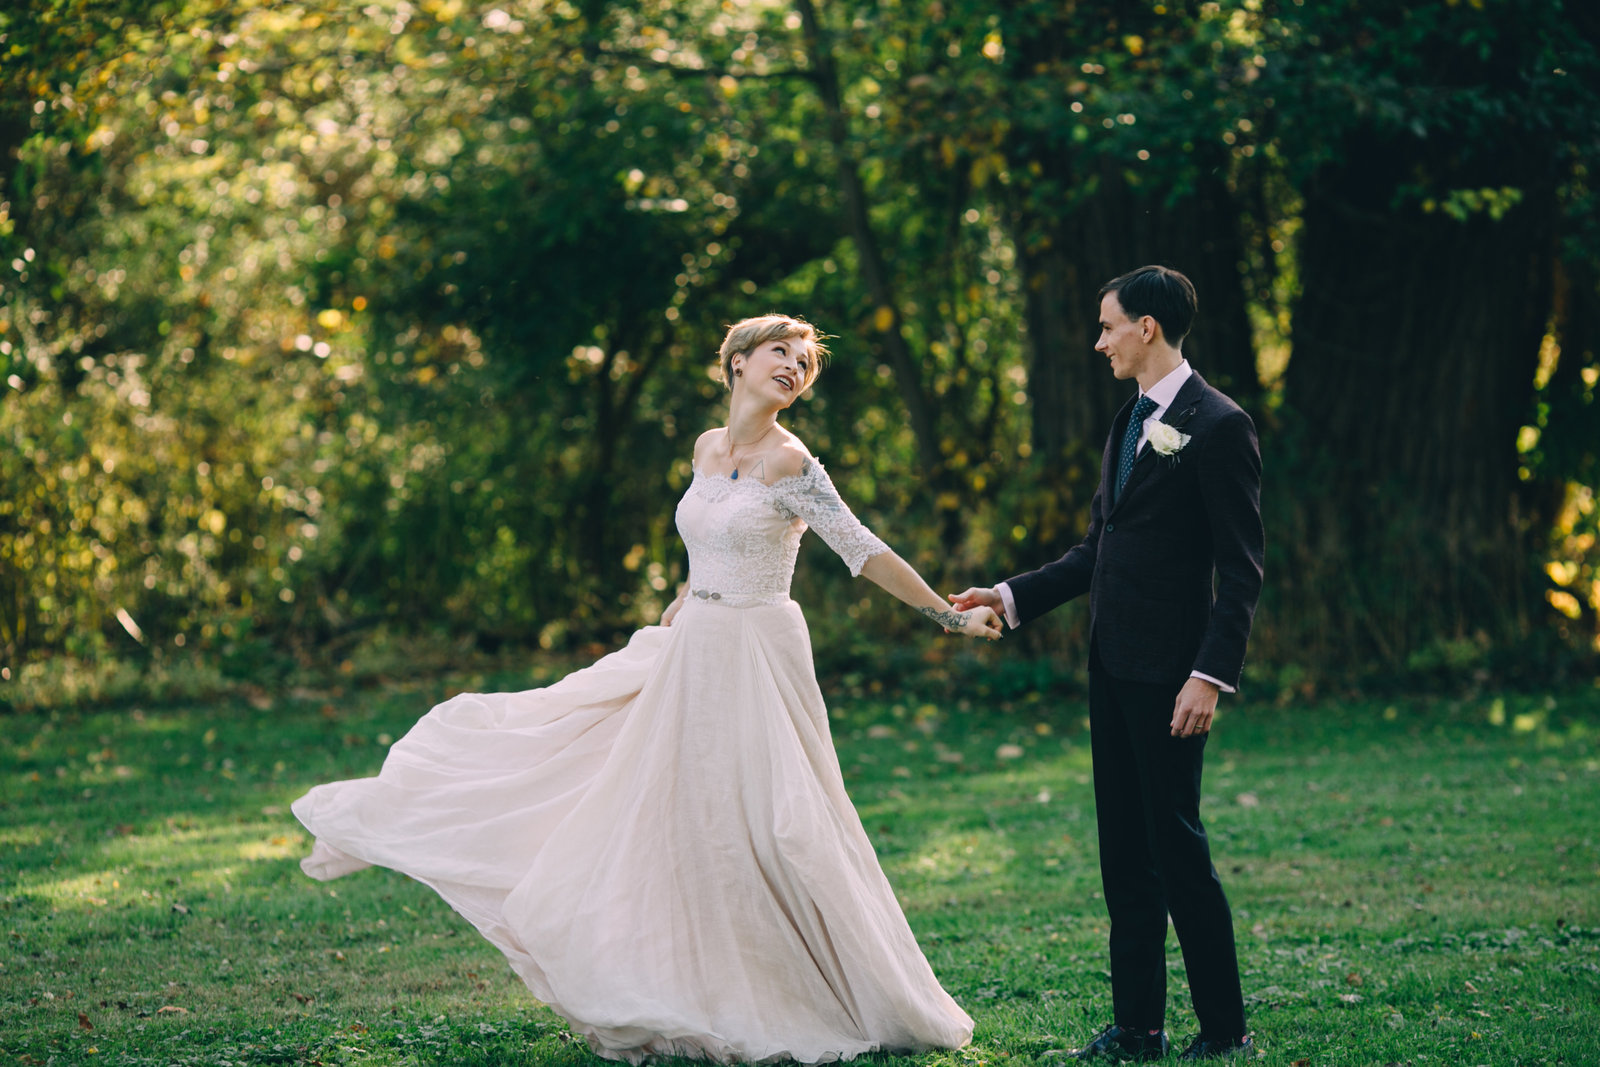 bride-and-groom-whimsical-wedding